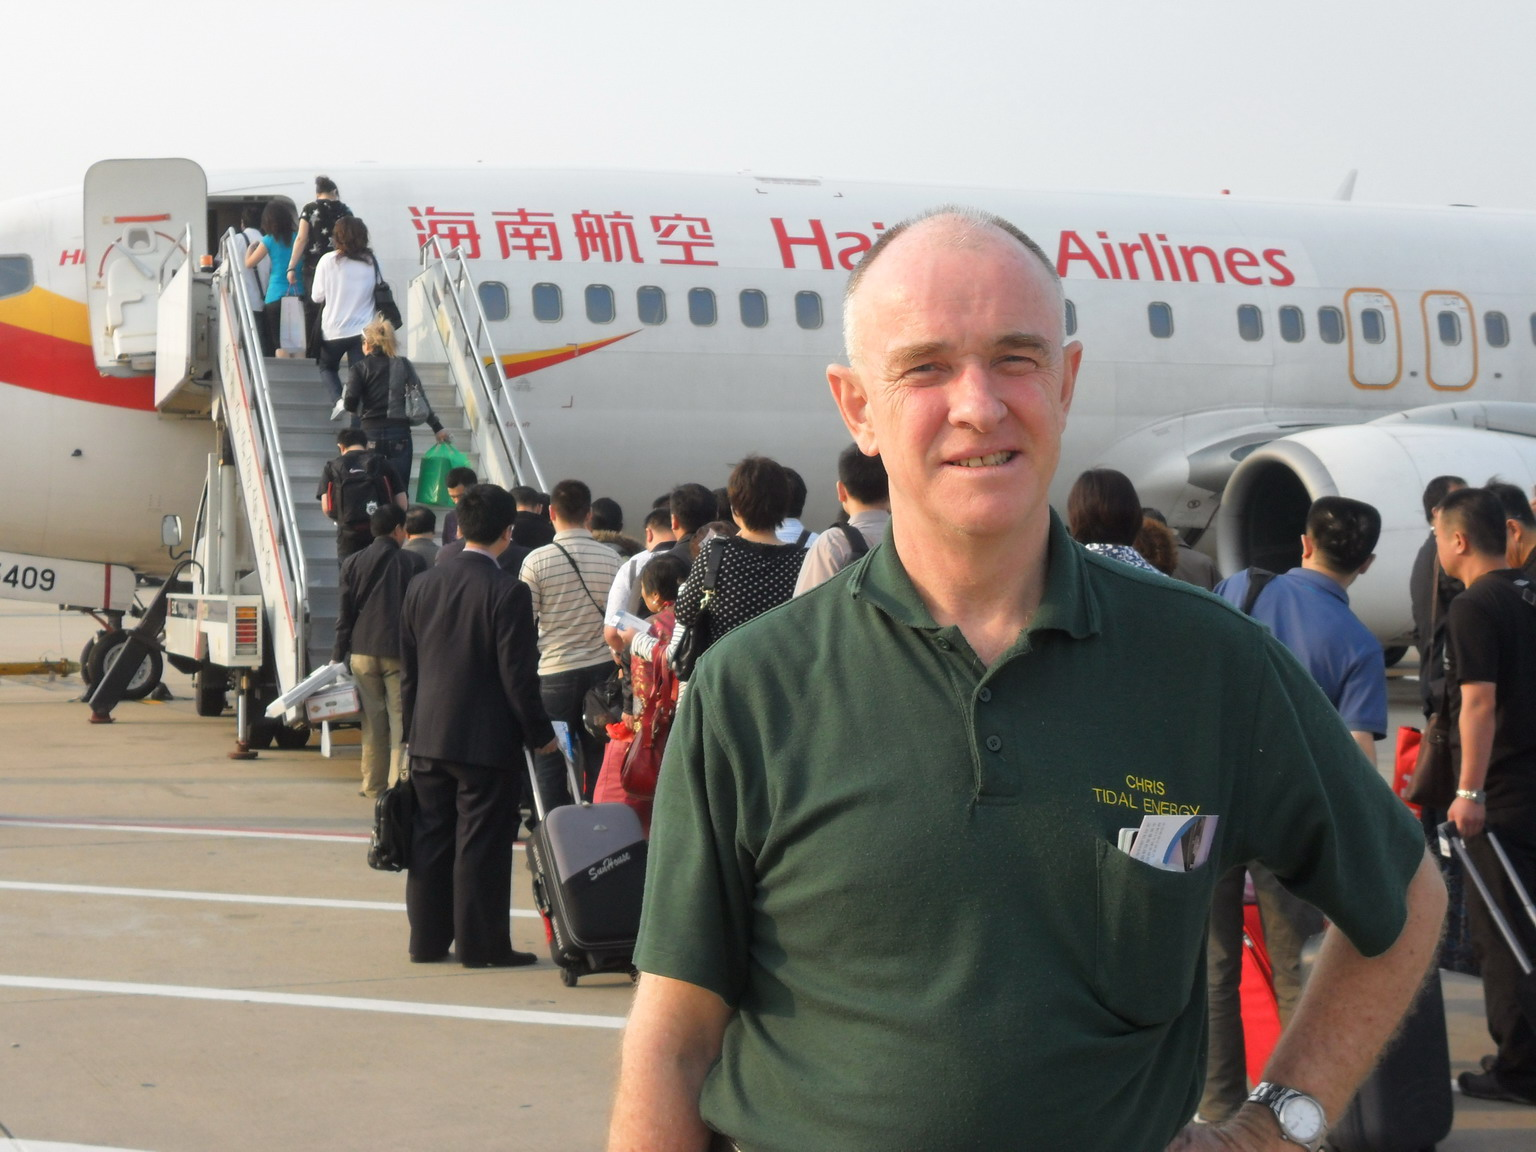 Leaving on flight from Shenzhen